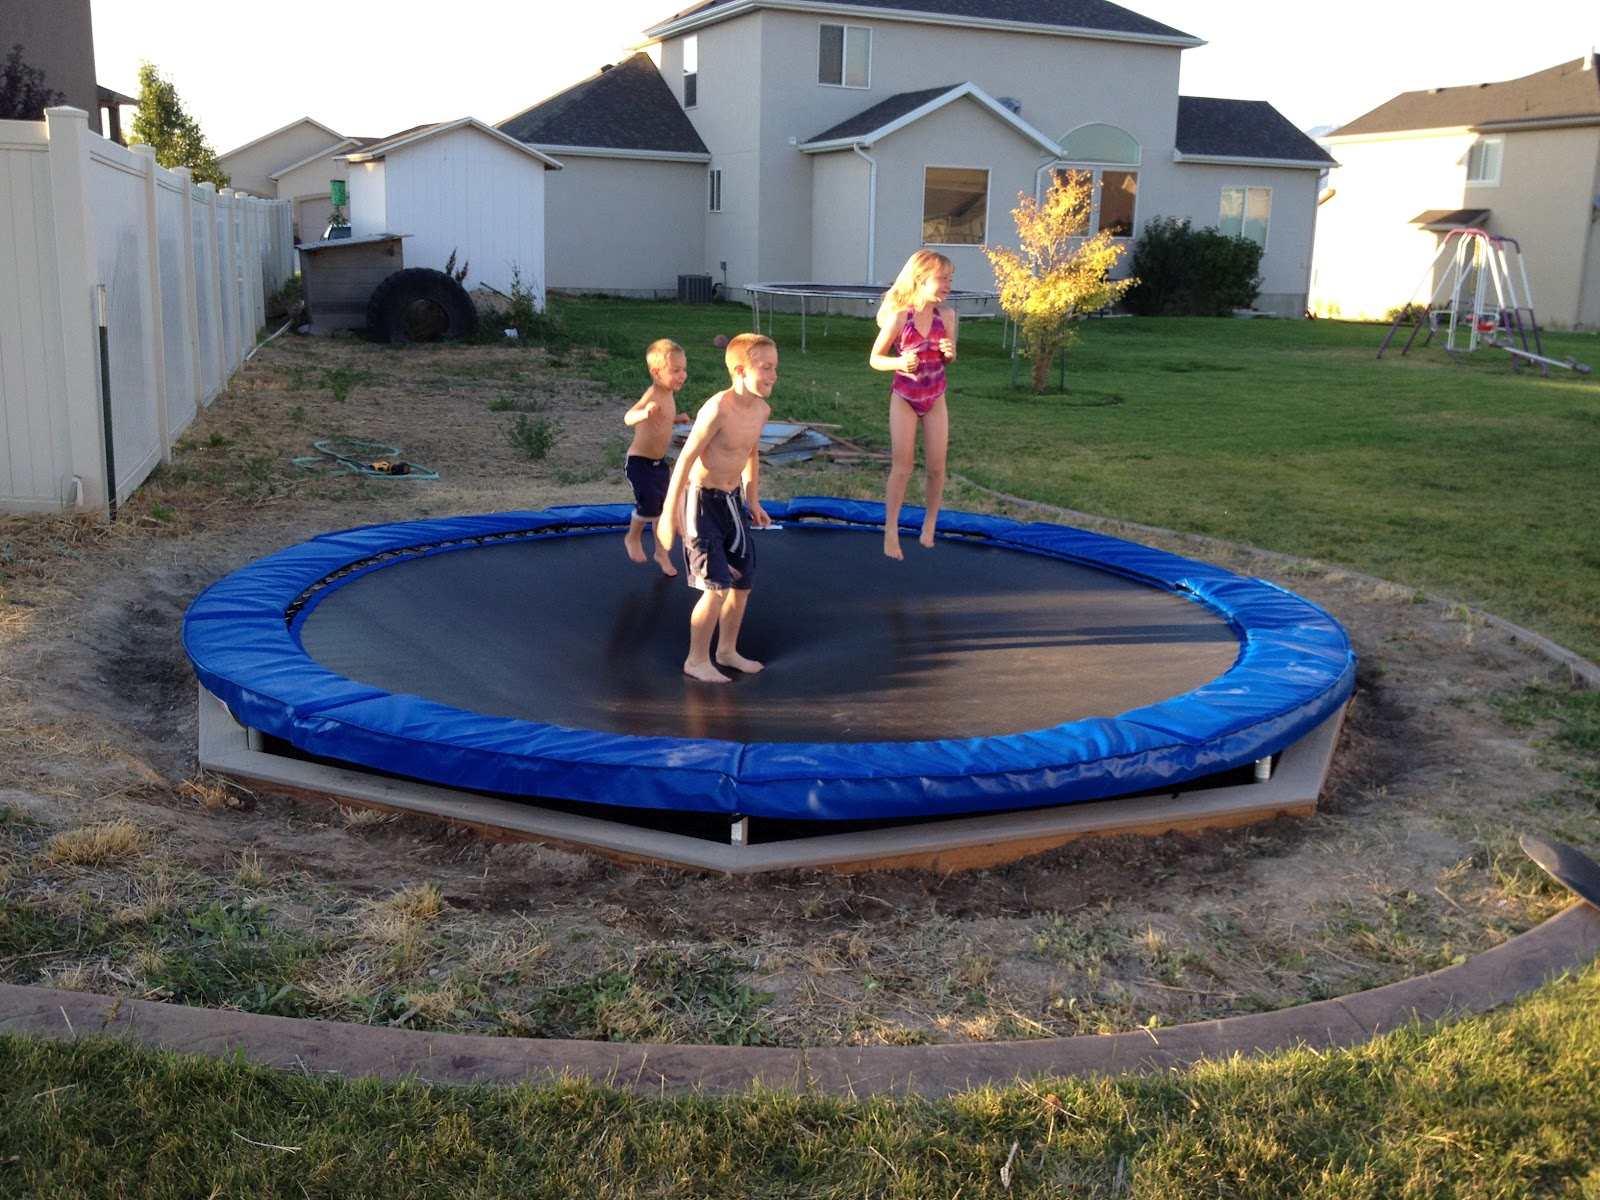 The Jackman Family Trampoline Project